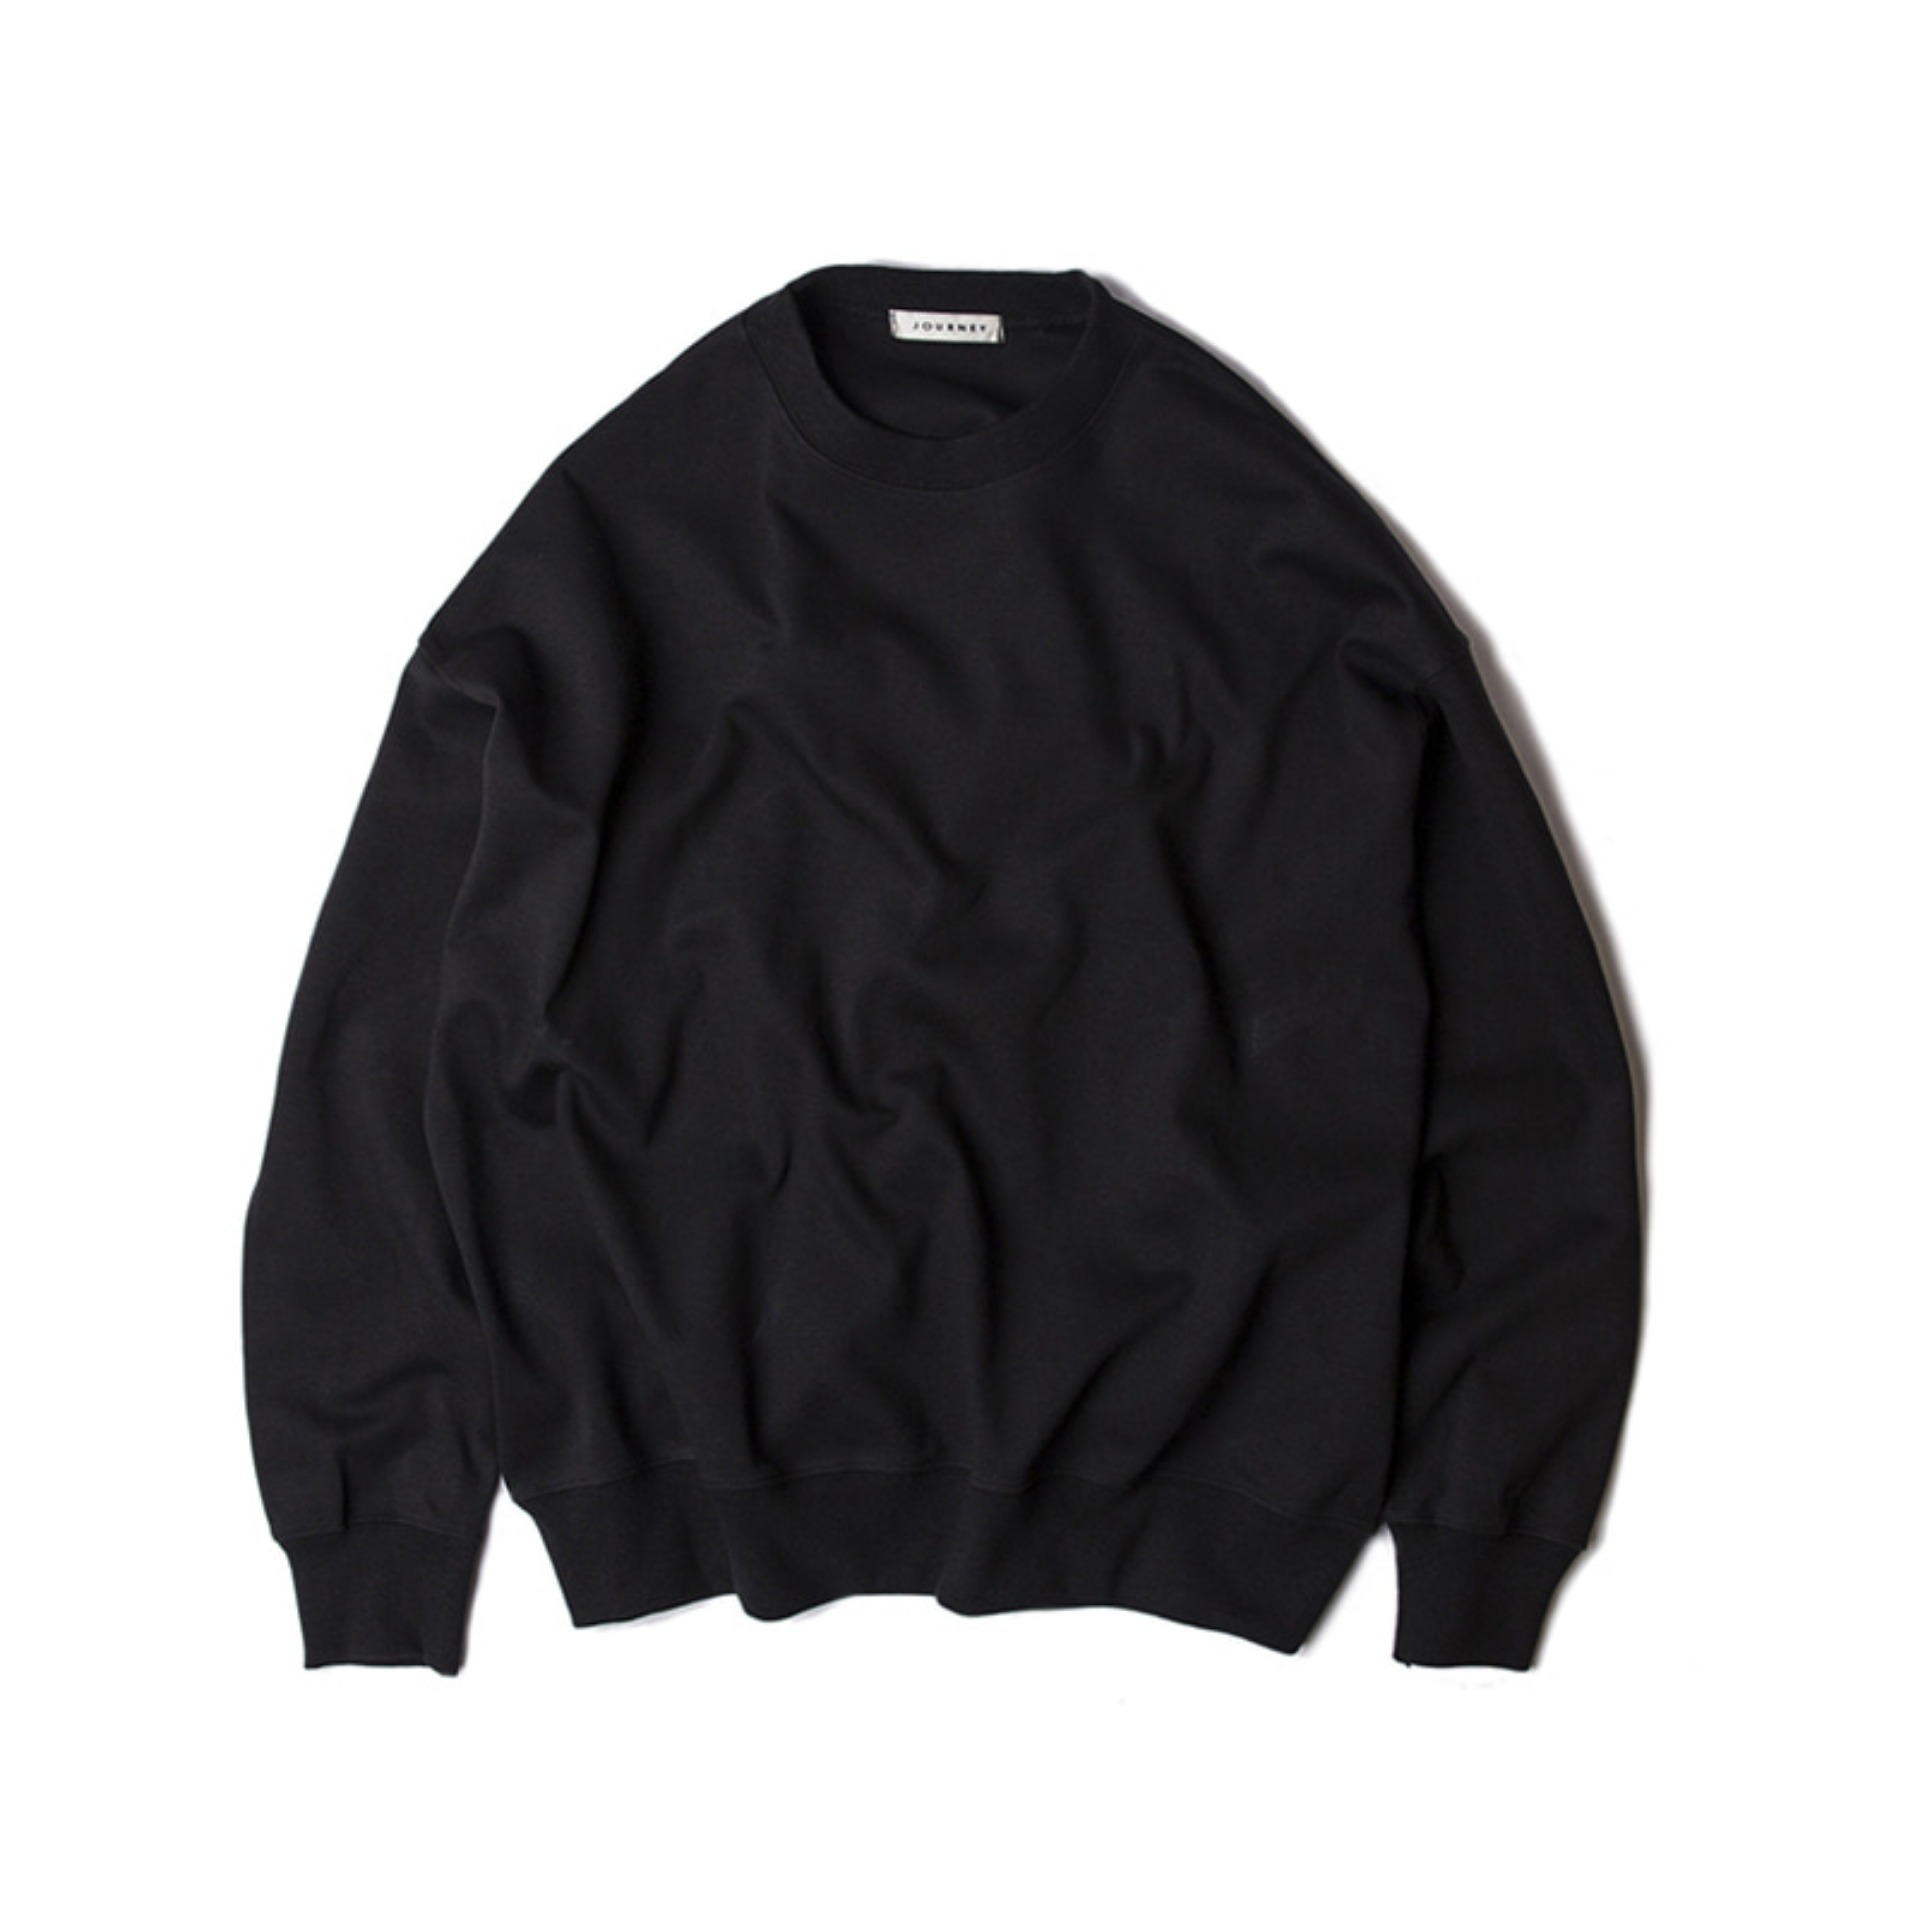 BLANKOVERSIZE FIT SWEATSHIRT(BLACK)